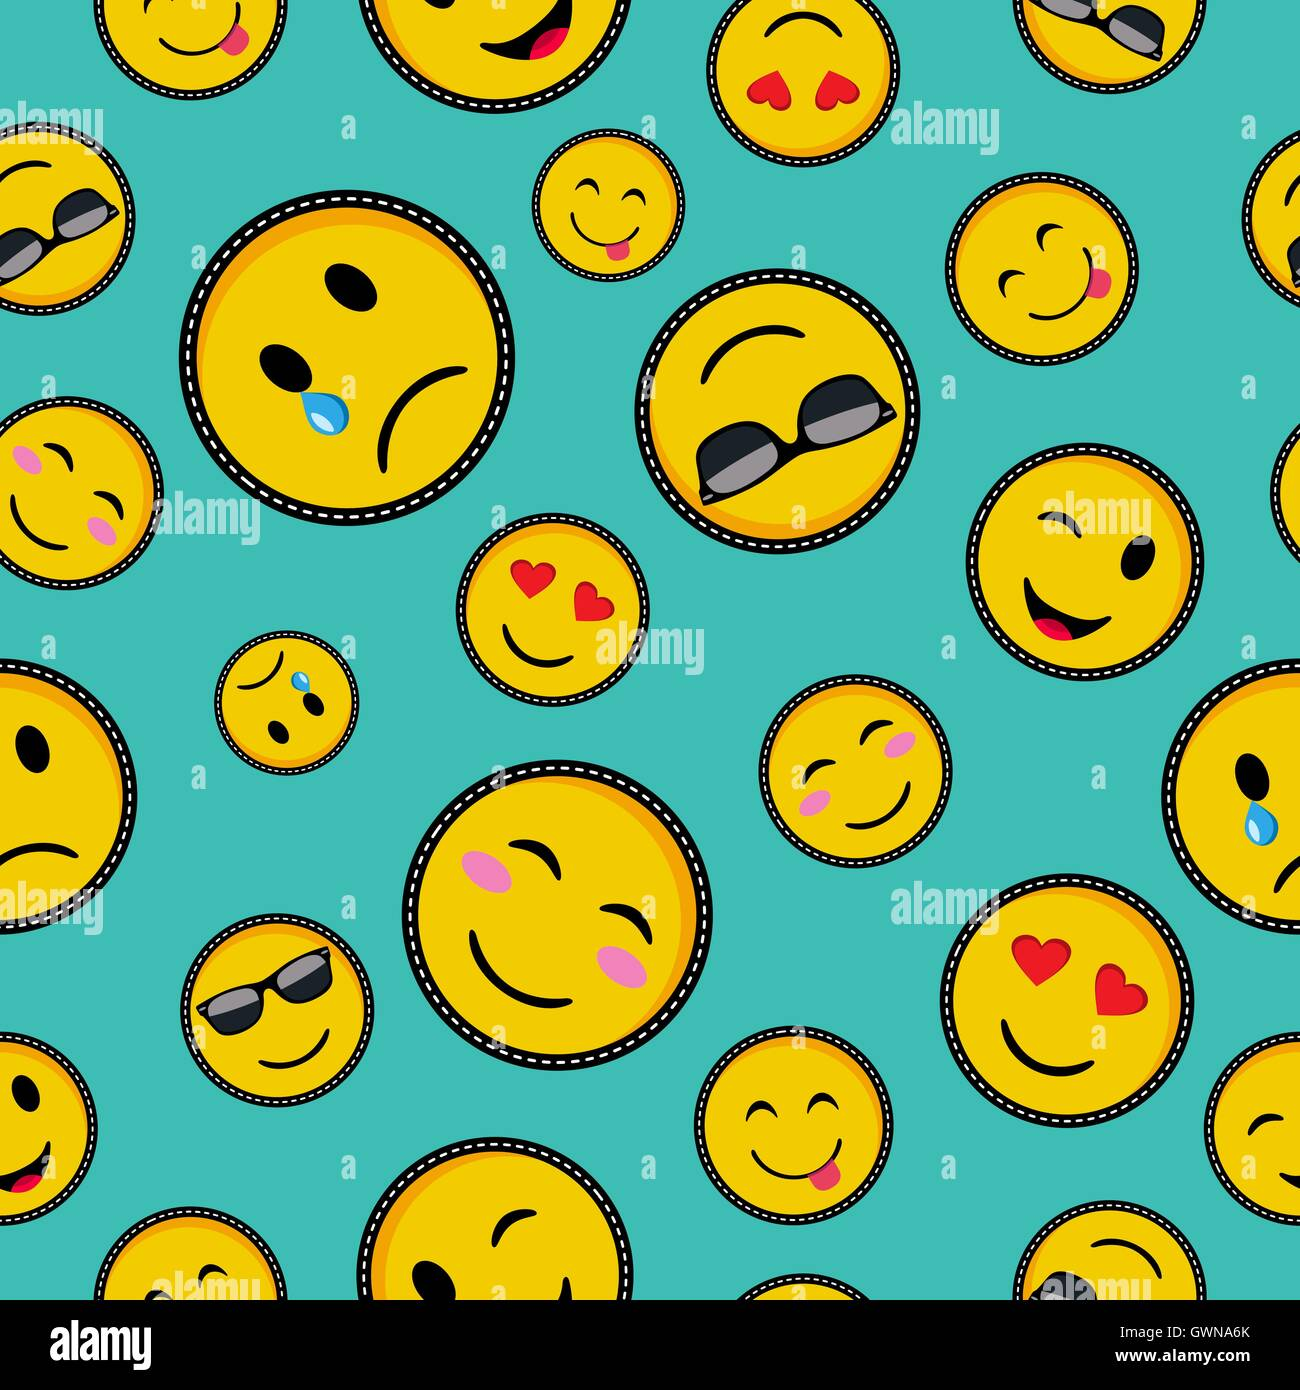 Seamless pattern with vibrant color emoji smiley face icons seamless pattern with vibrant color emoji smiley face icons trendy texting symbols in pop art style eps10 vector biocorpaavc Images